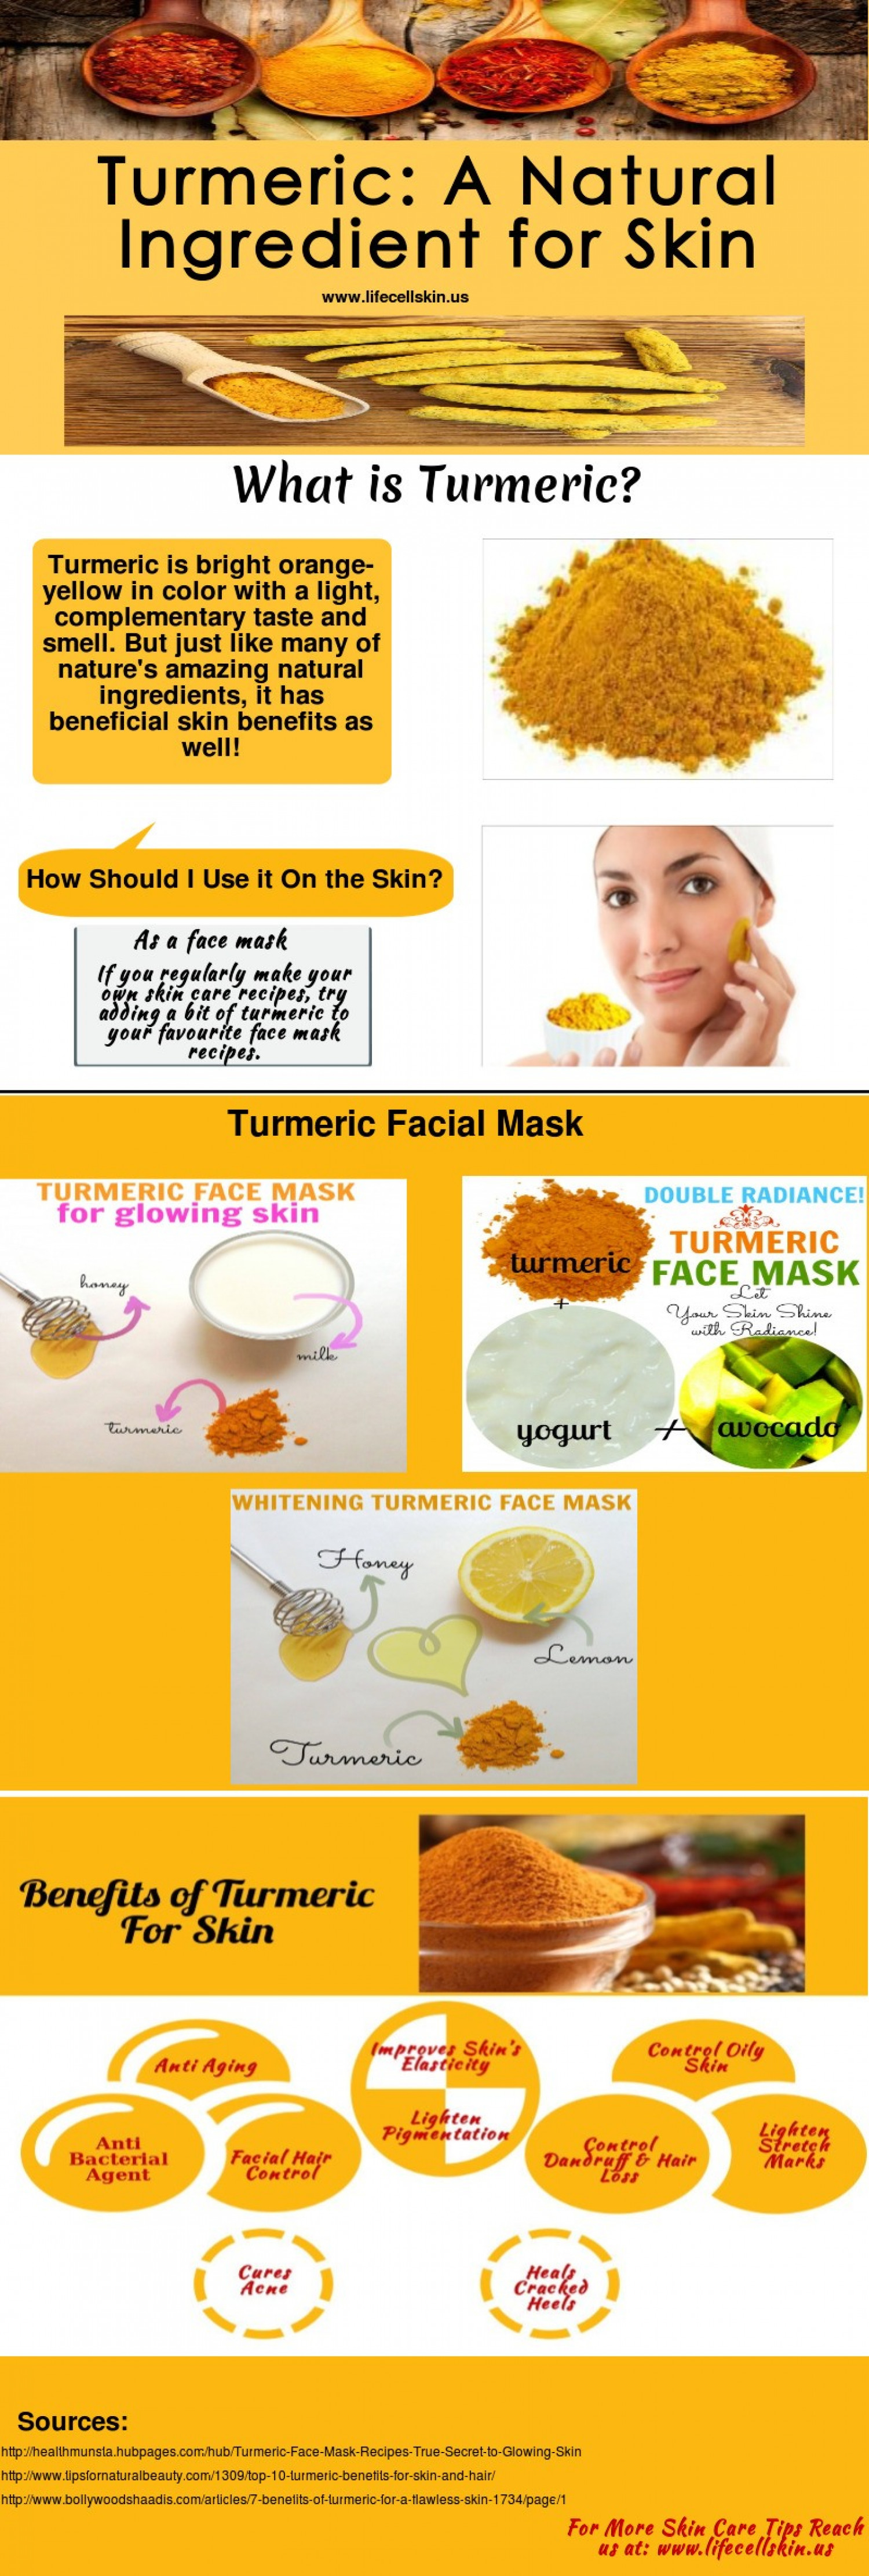 Turmeric: A Natural Ingredient for Skin | Visual.ly